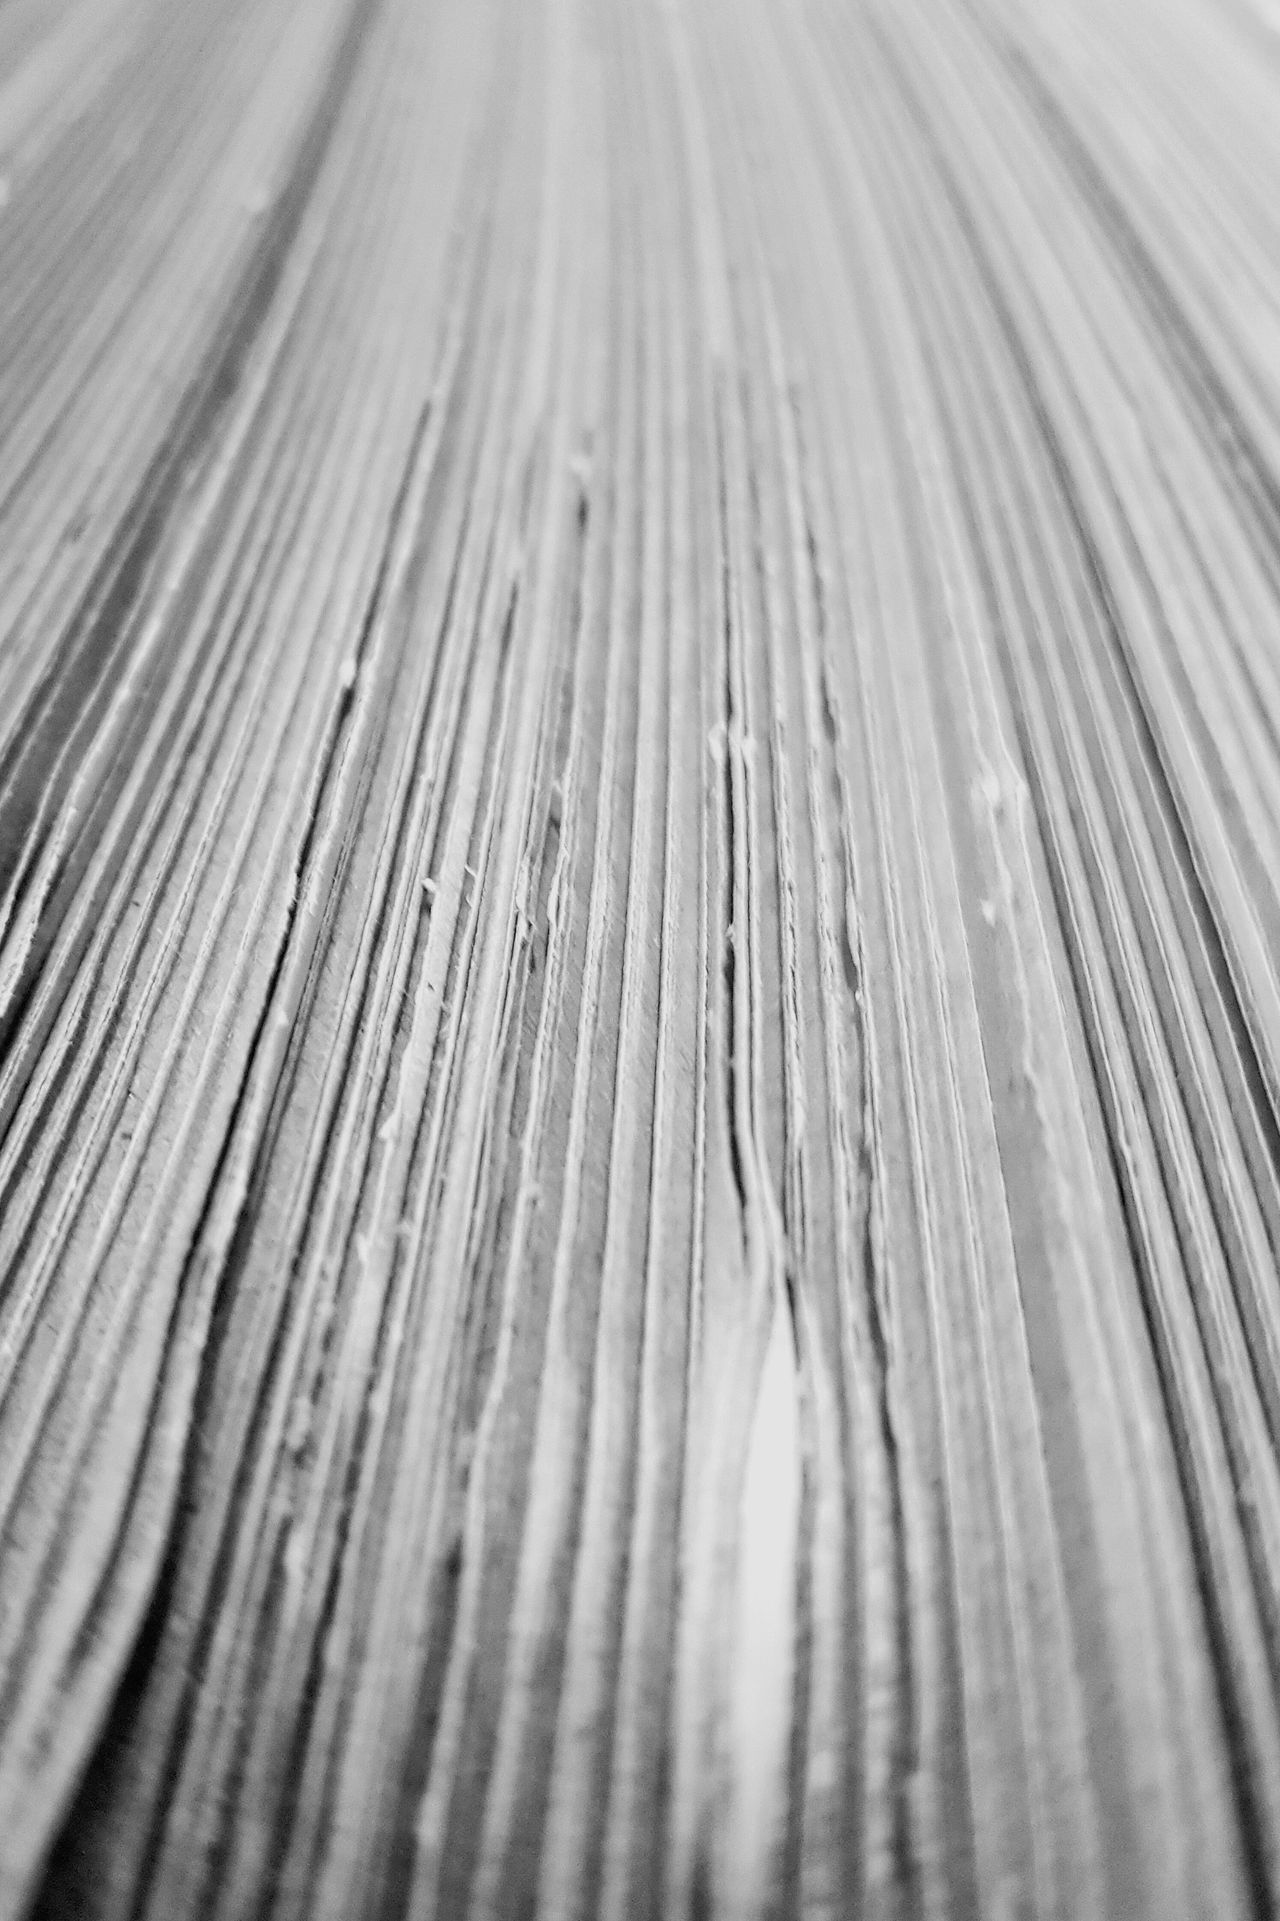 Close-up Extreme Close-up Selective Focus Diminishing Perspective Cardboard Paper Blackandwhite Black & White Black&white Black And White Abstractions Fine Art Abstract Photography Detail Still Life Photography Still Life Lines